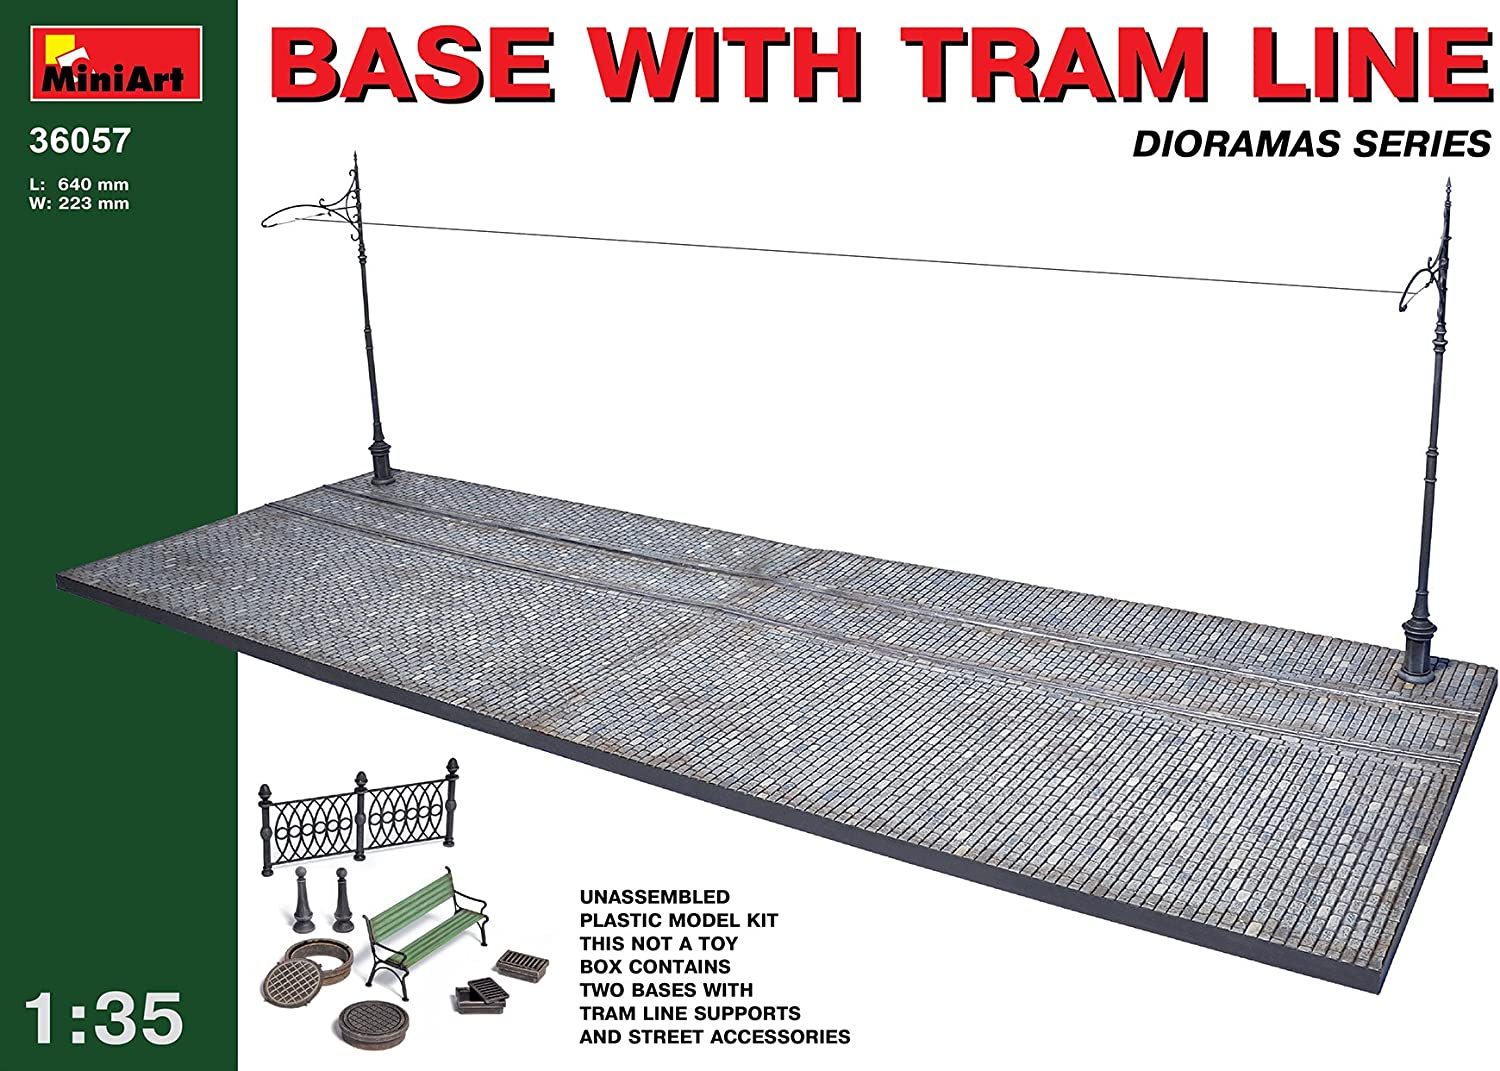 Base with Tram Line (1 35)